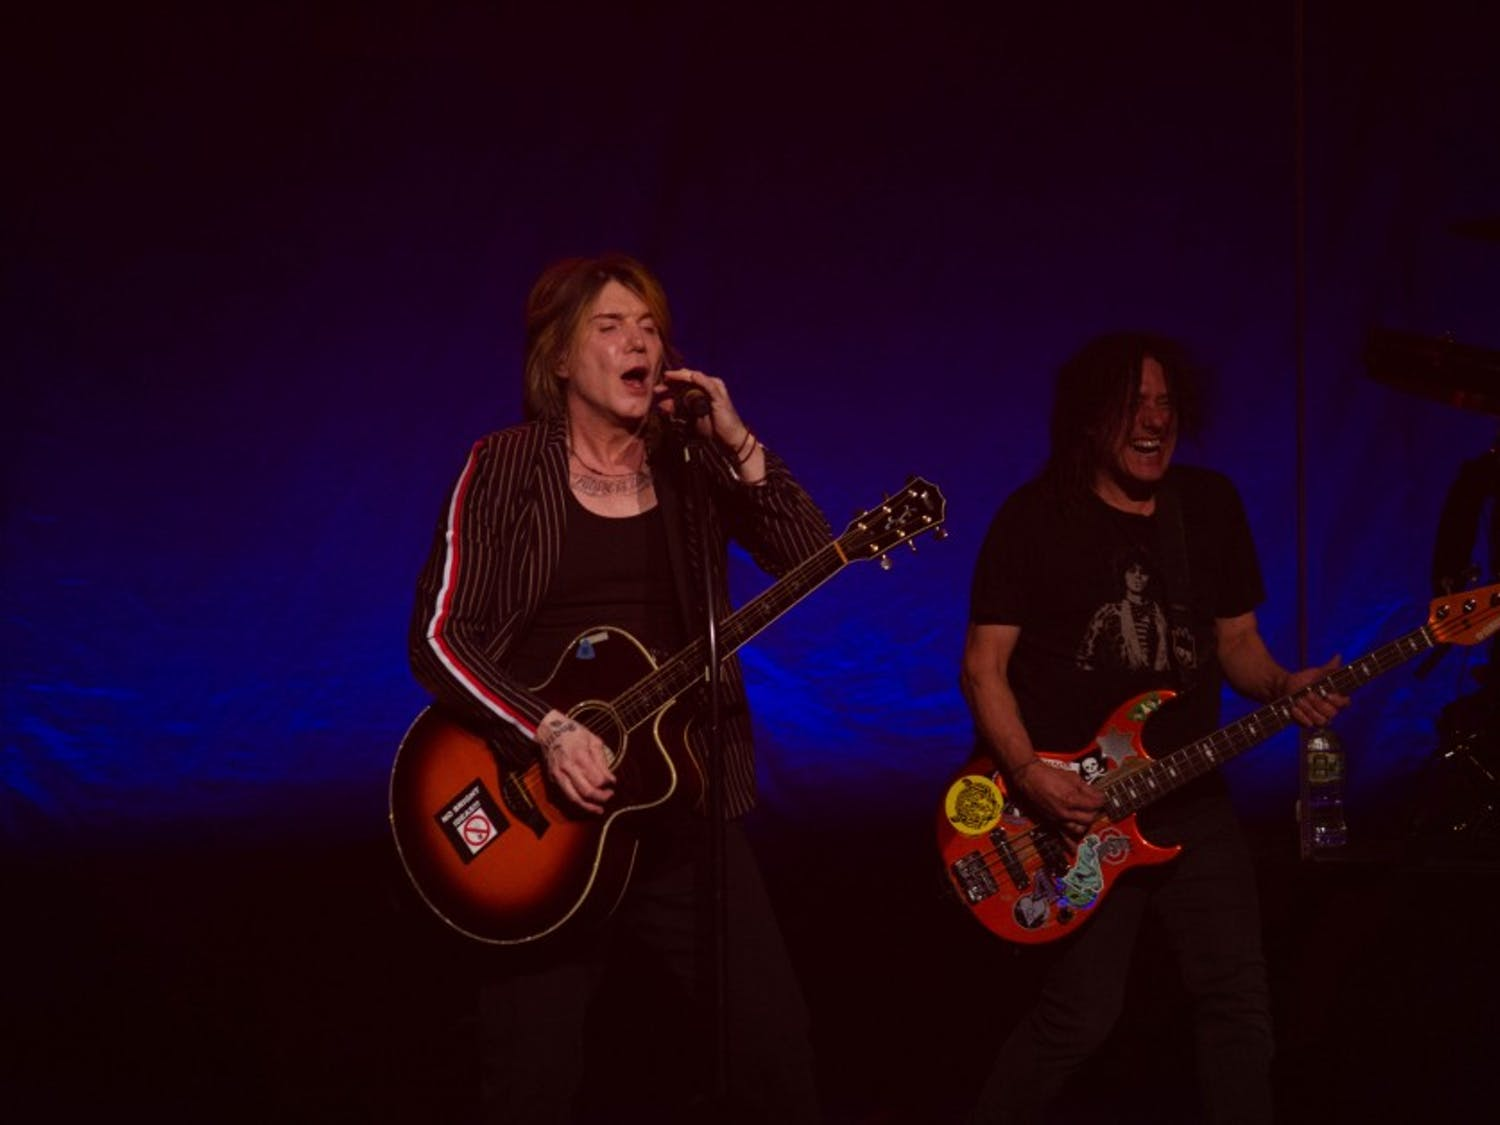 """The Goo Goo Dolls played their first of three sold-out shows Friday at Shea's Performing Arts Center. The band is celebrating the 20th anniversary of their hit album """"Dizzy Up the Girl."""""""